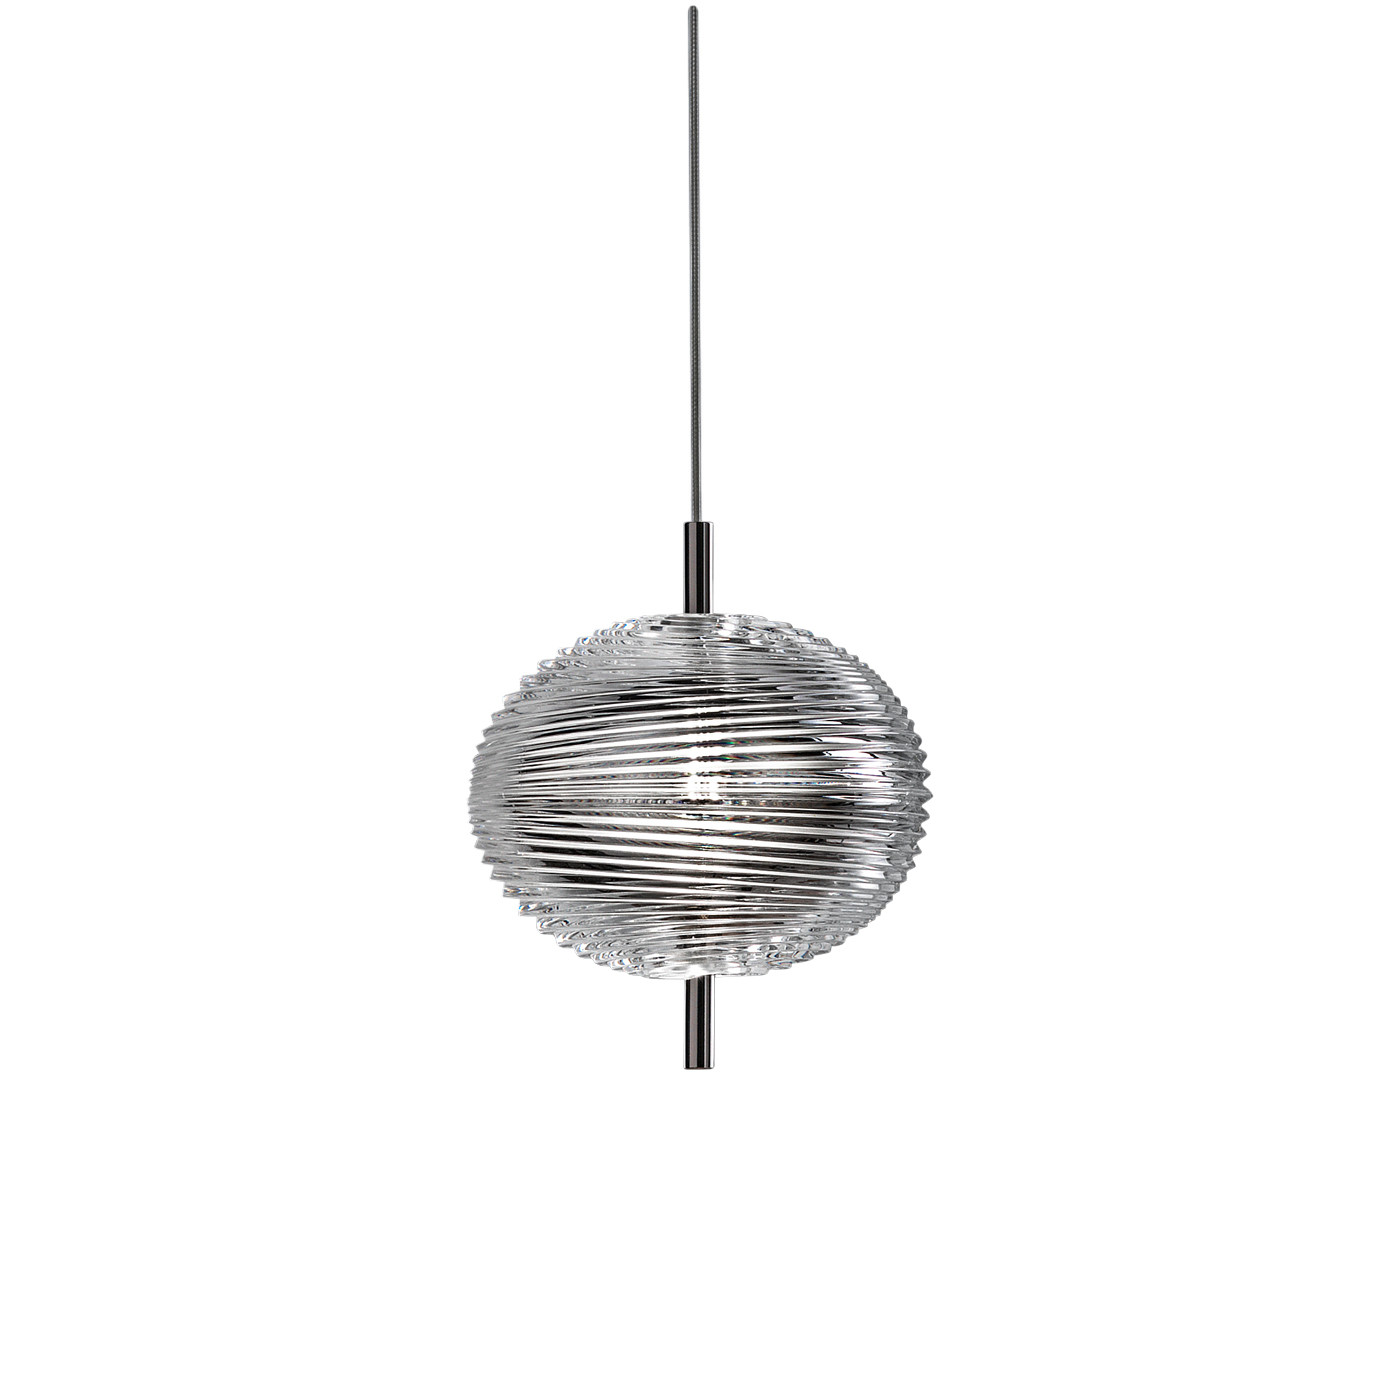 Studio Italia Design Jefferson Mini Pendelleuchte